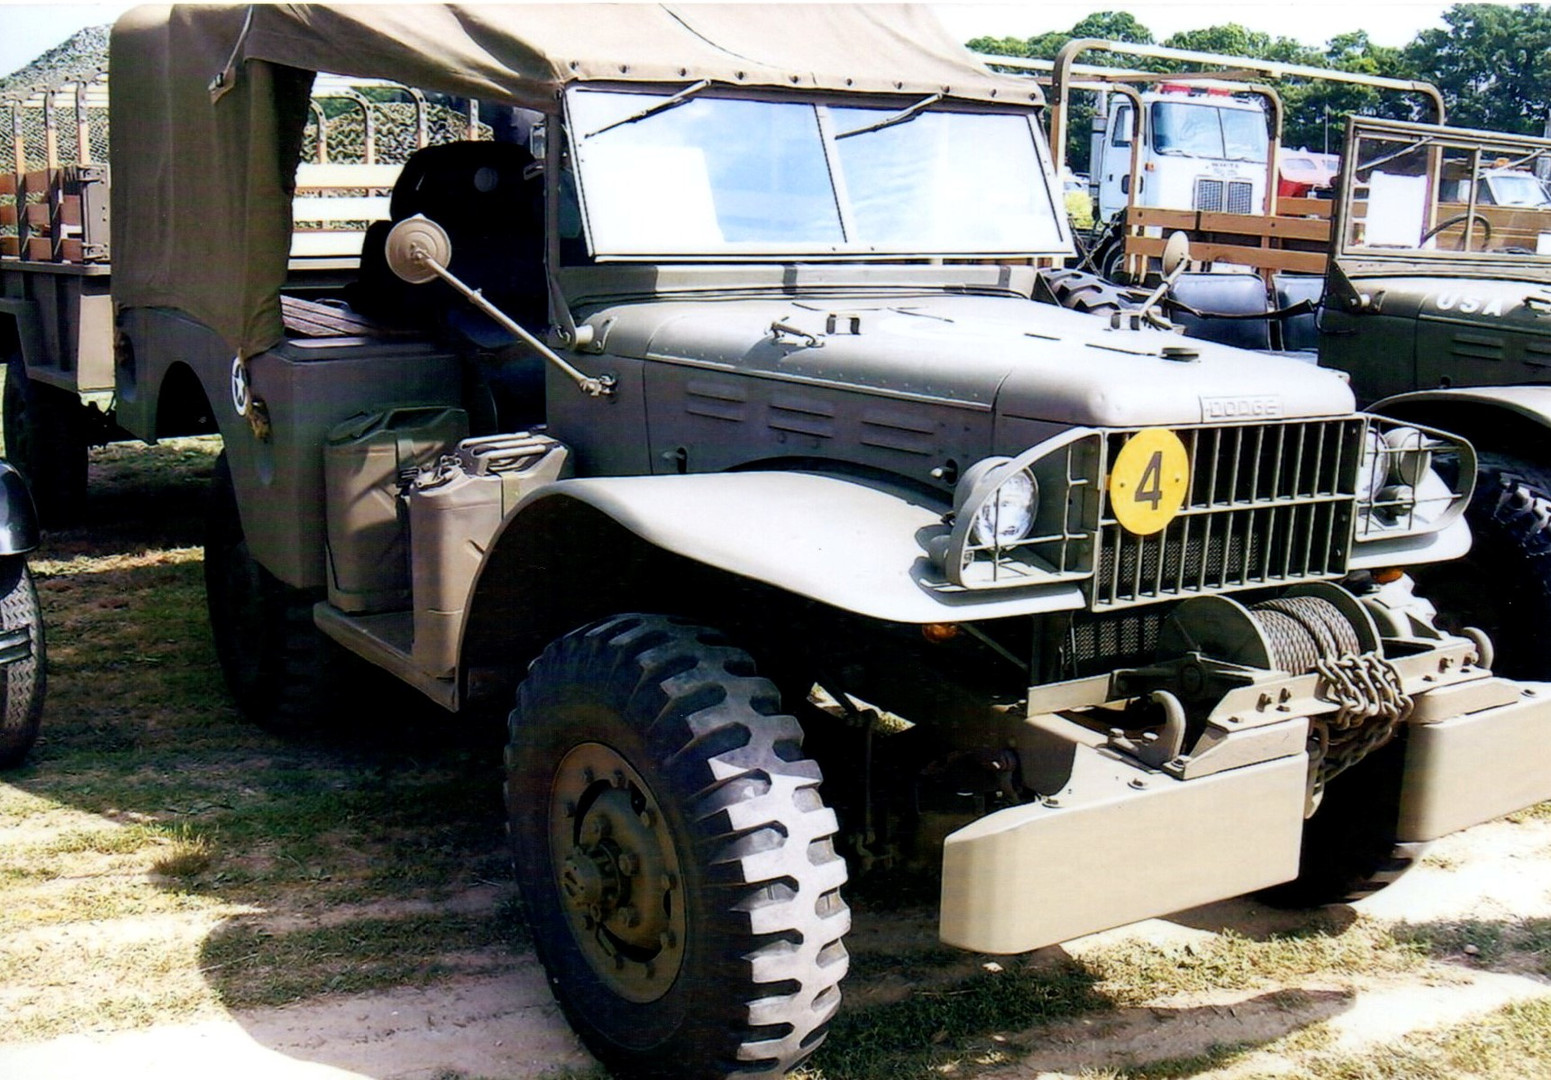 1942 Dodge WC51 weapons carrier - Greg King